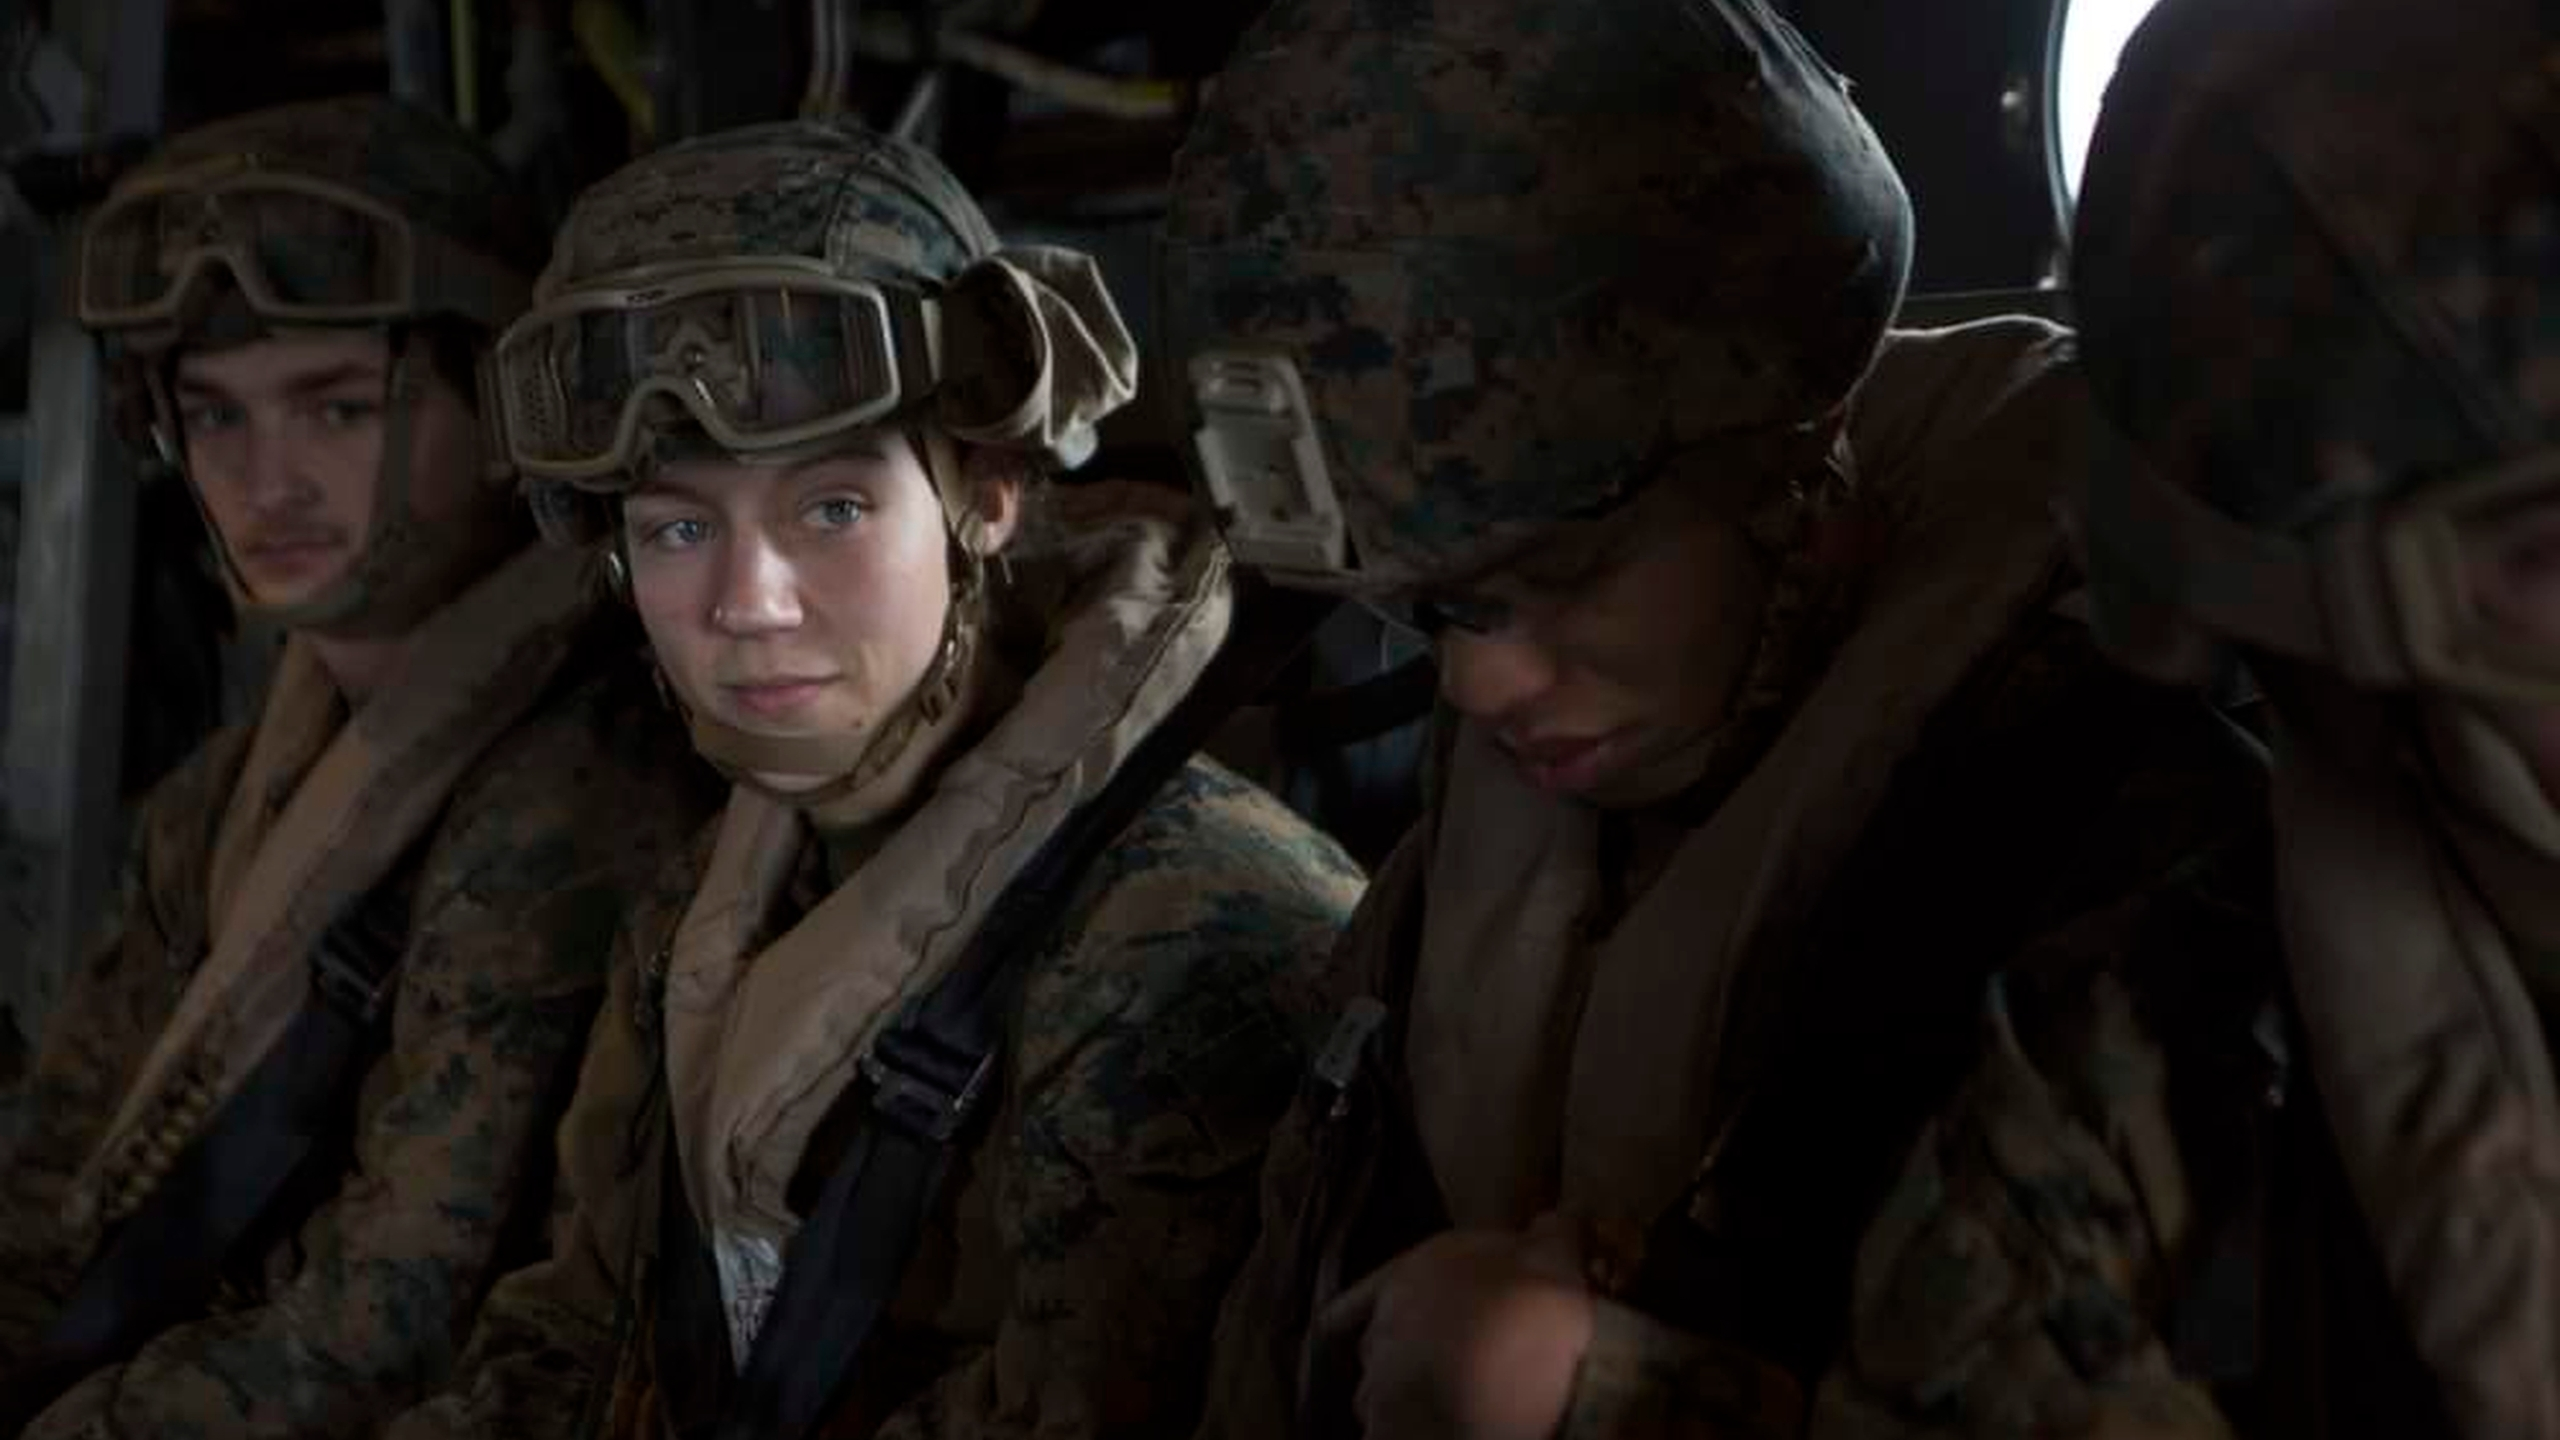 This Aug. 26, 2021, photo, released by U.S. Marine Corps/II Marine Expeditionary Force, shows U.S. Marine Corps Sgt. Nicole L. Gee, second from left, while supporting evacuation operations in Kabul, Kabul Province, Afghanistan. Sgt. Gee died following an attack near the Hamid Karzai International Airport in Kabul. Gee, 23, of Sacramento, California, was a maintenance technician with the 24th Marine Expeditionary Unit from Camp Lejeune in North Carolina. (U.S. Marine Corps/II Marine Expeditionary Force via AP)